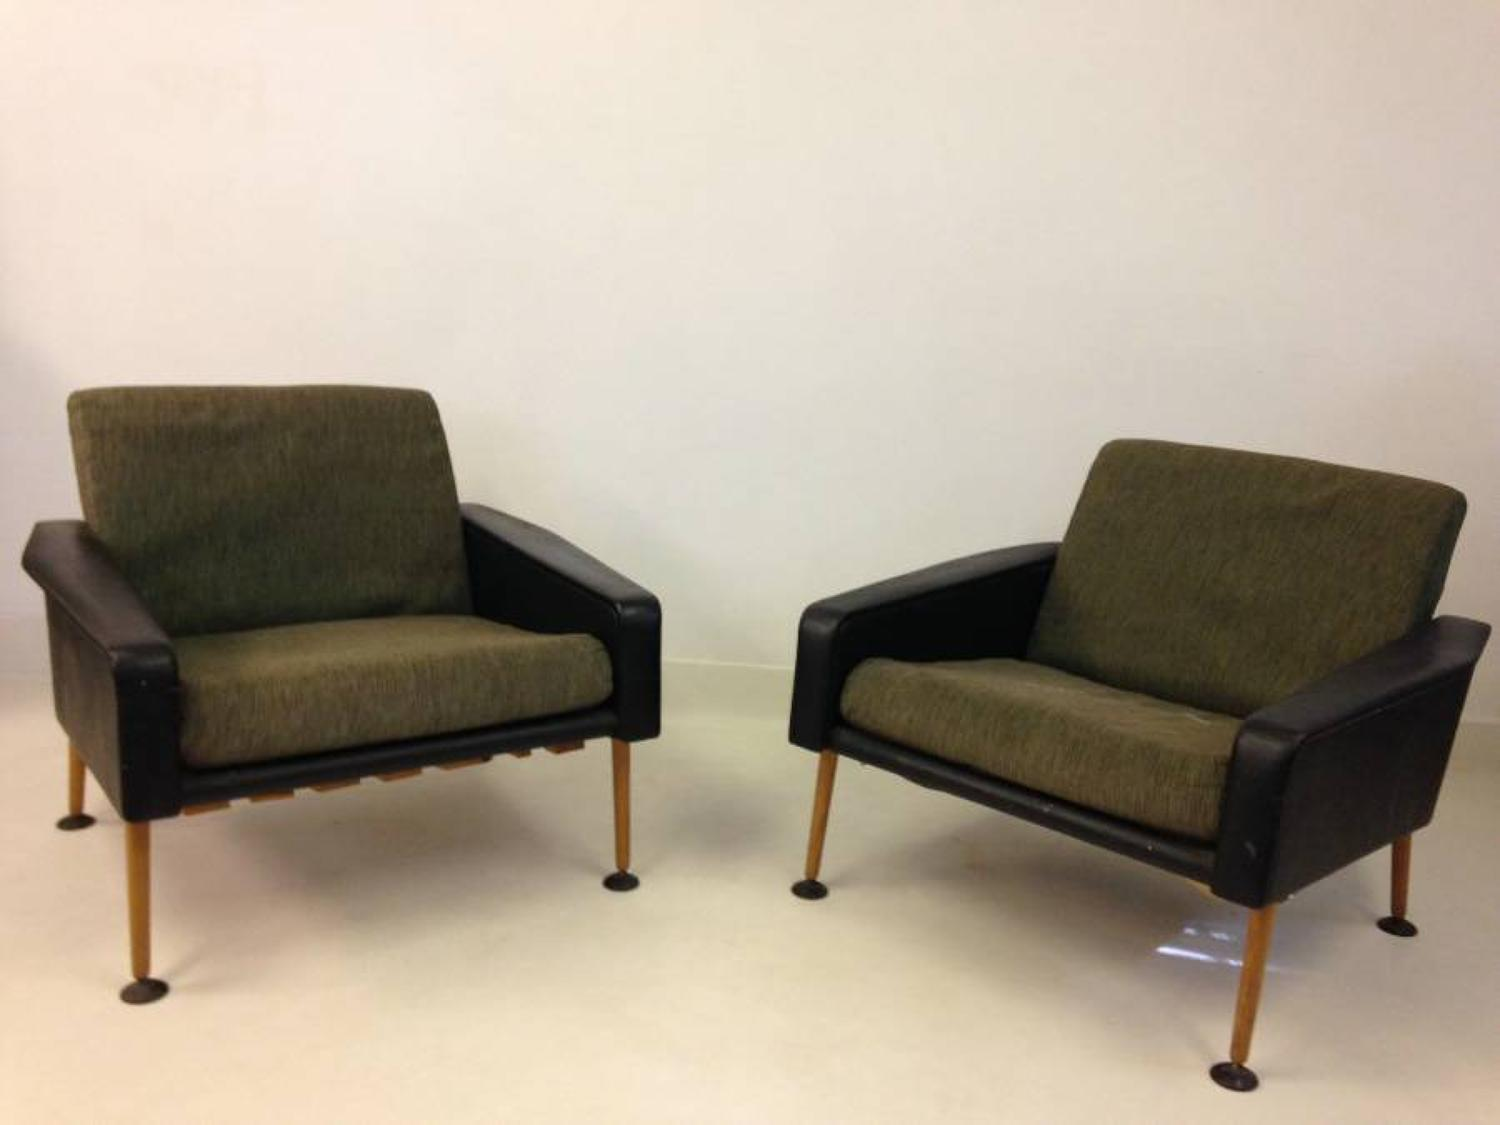 A pair of 1950s armchairs by Ernest Race